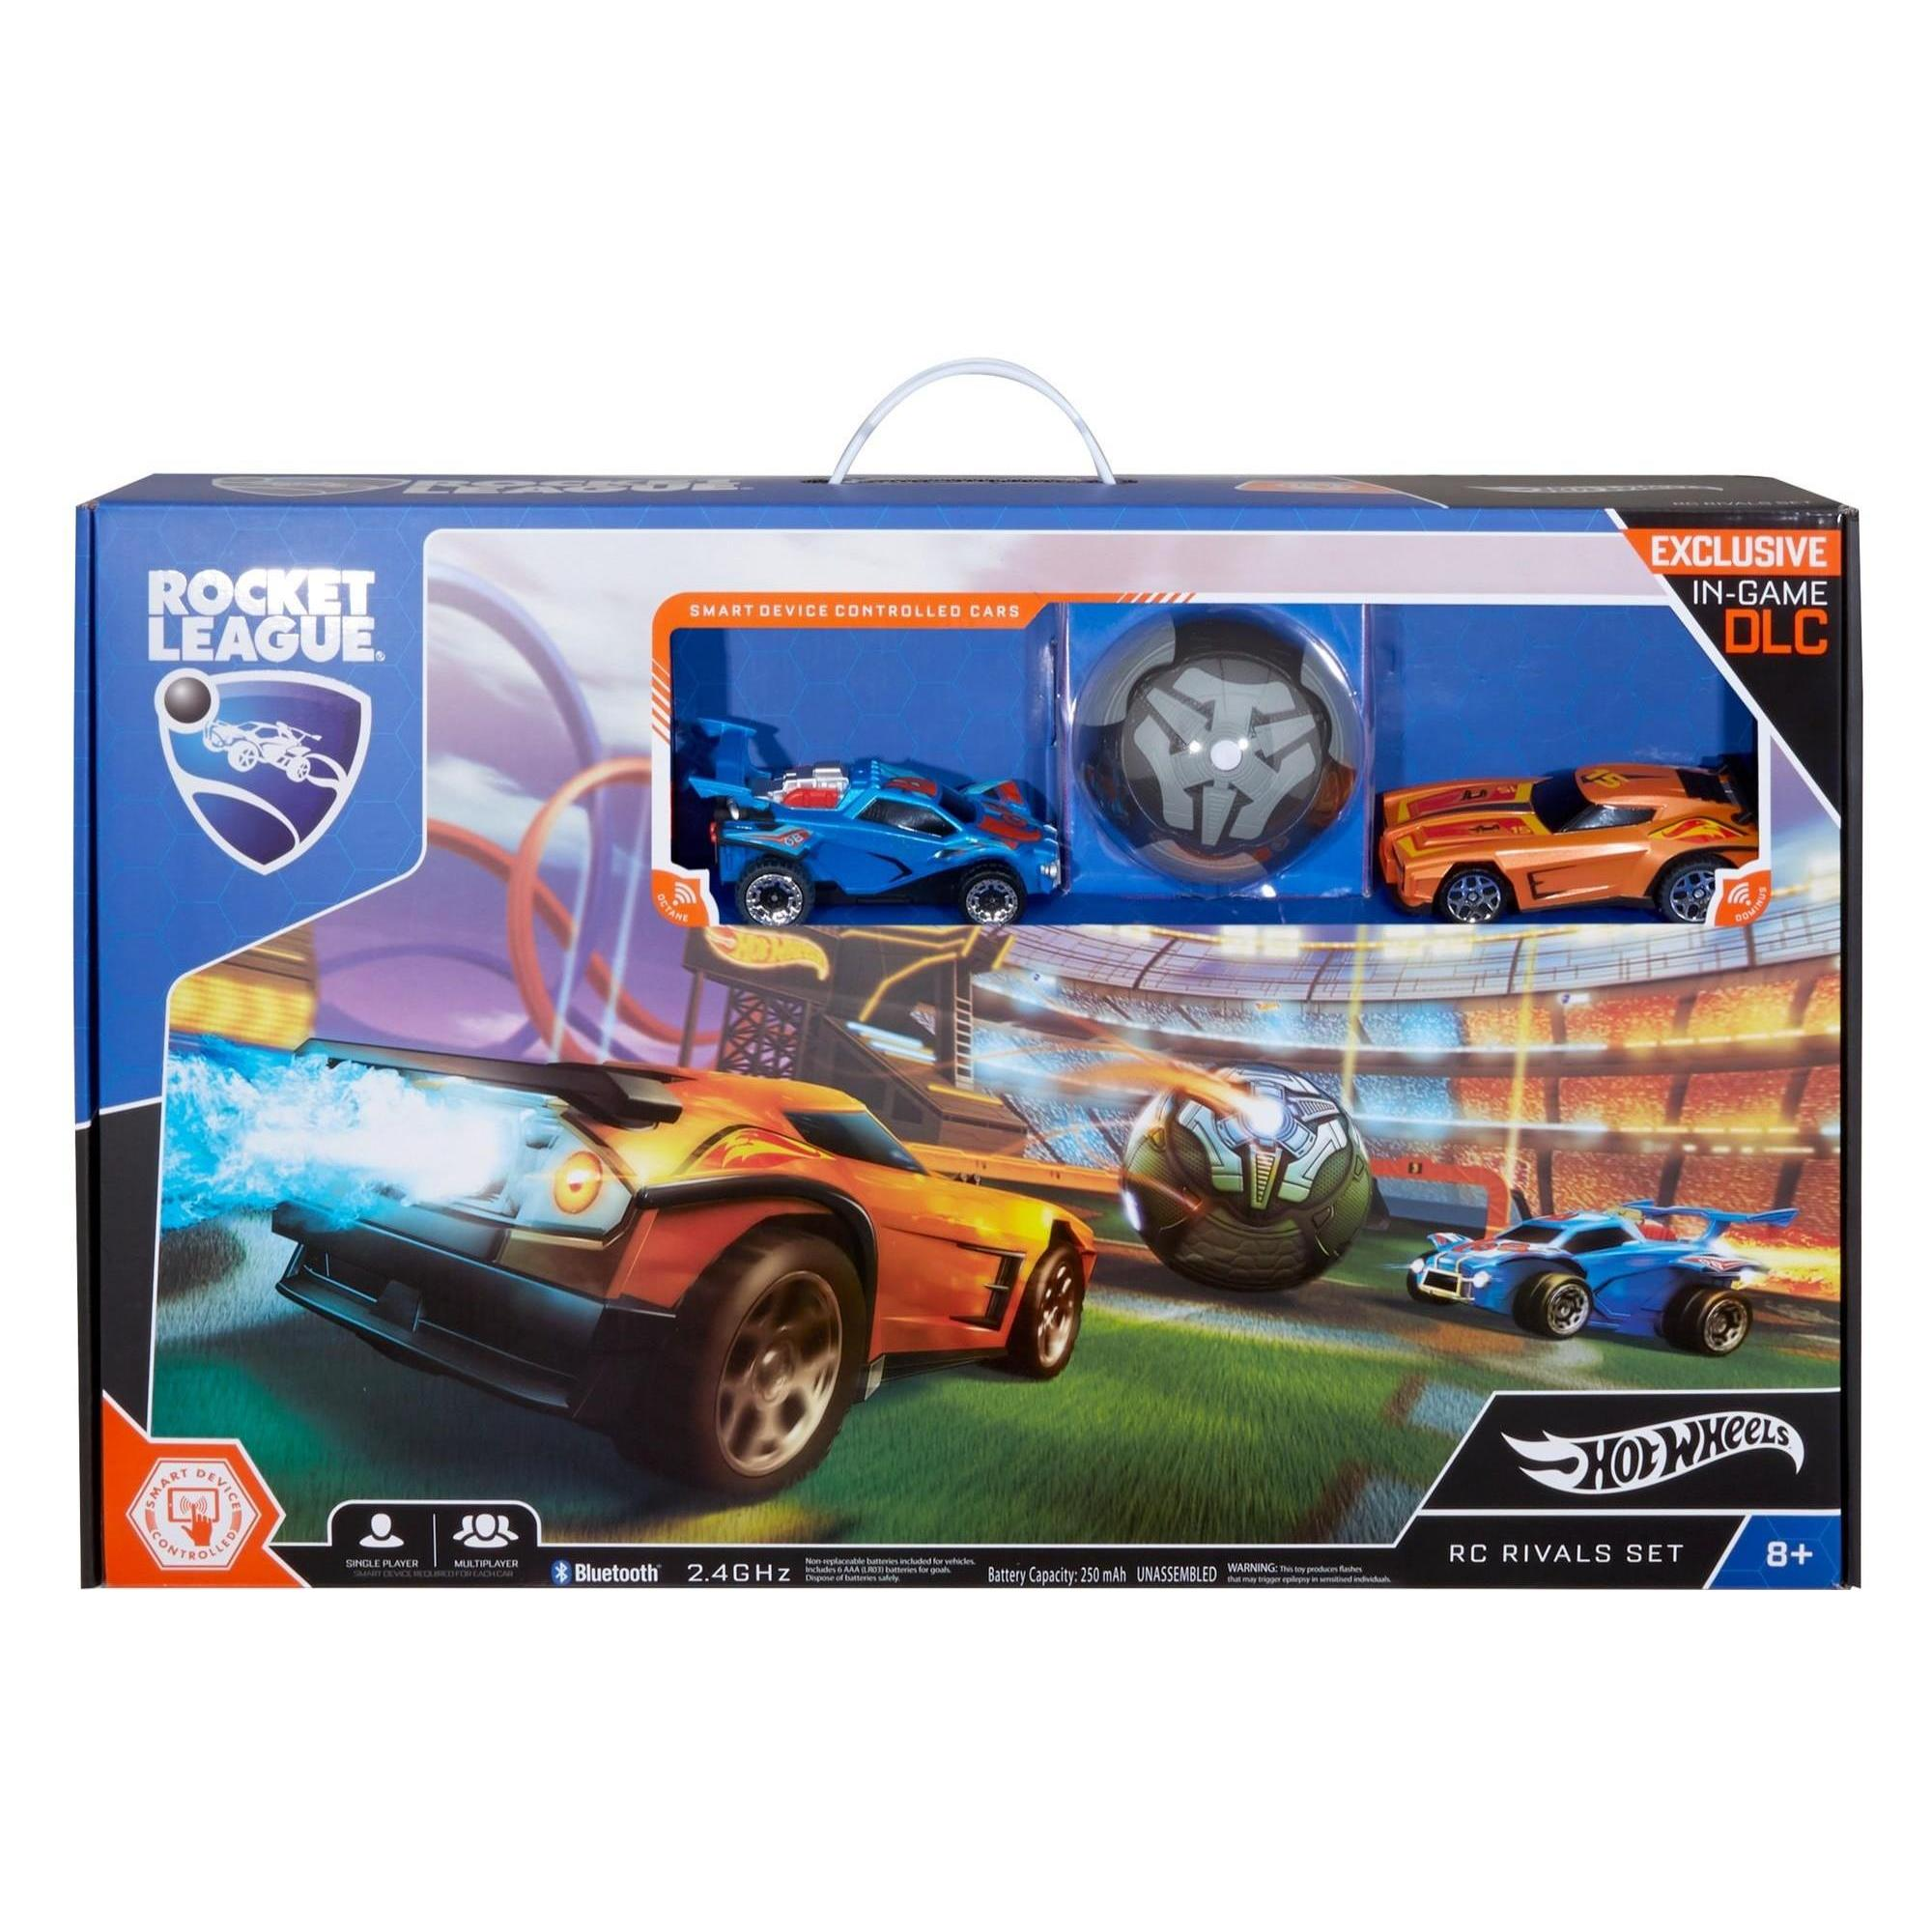 Hot Wheels Rocket League R/C Rivals Stadium Play Set